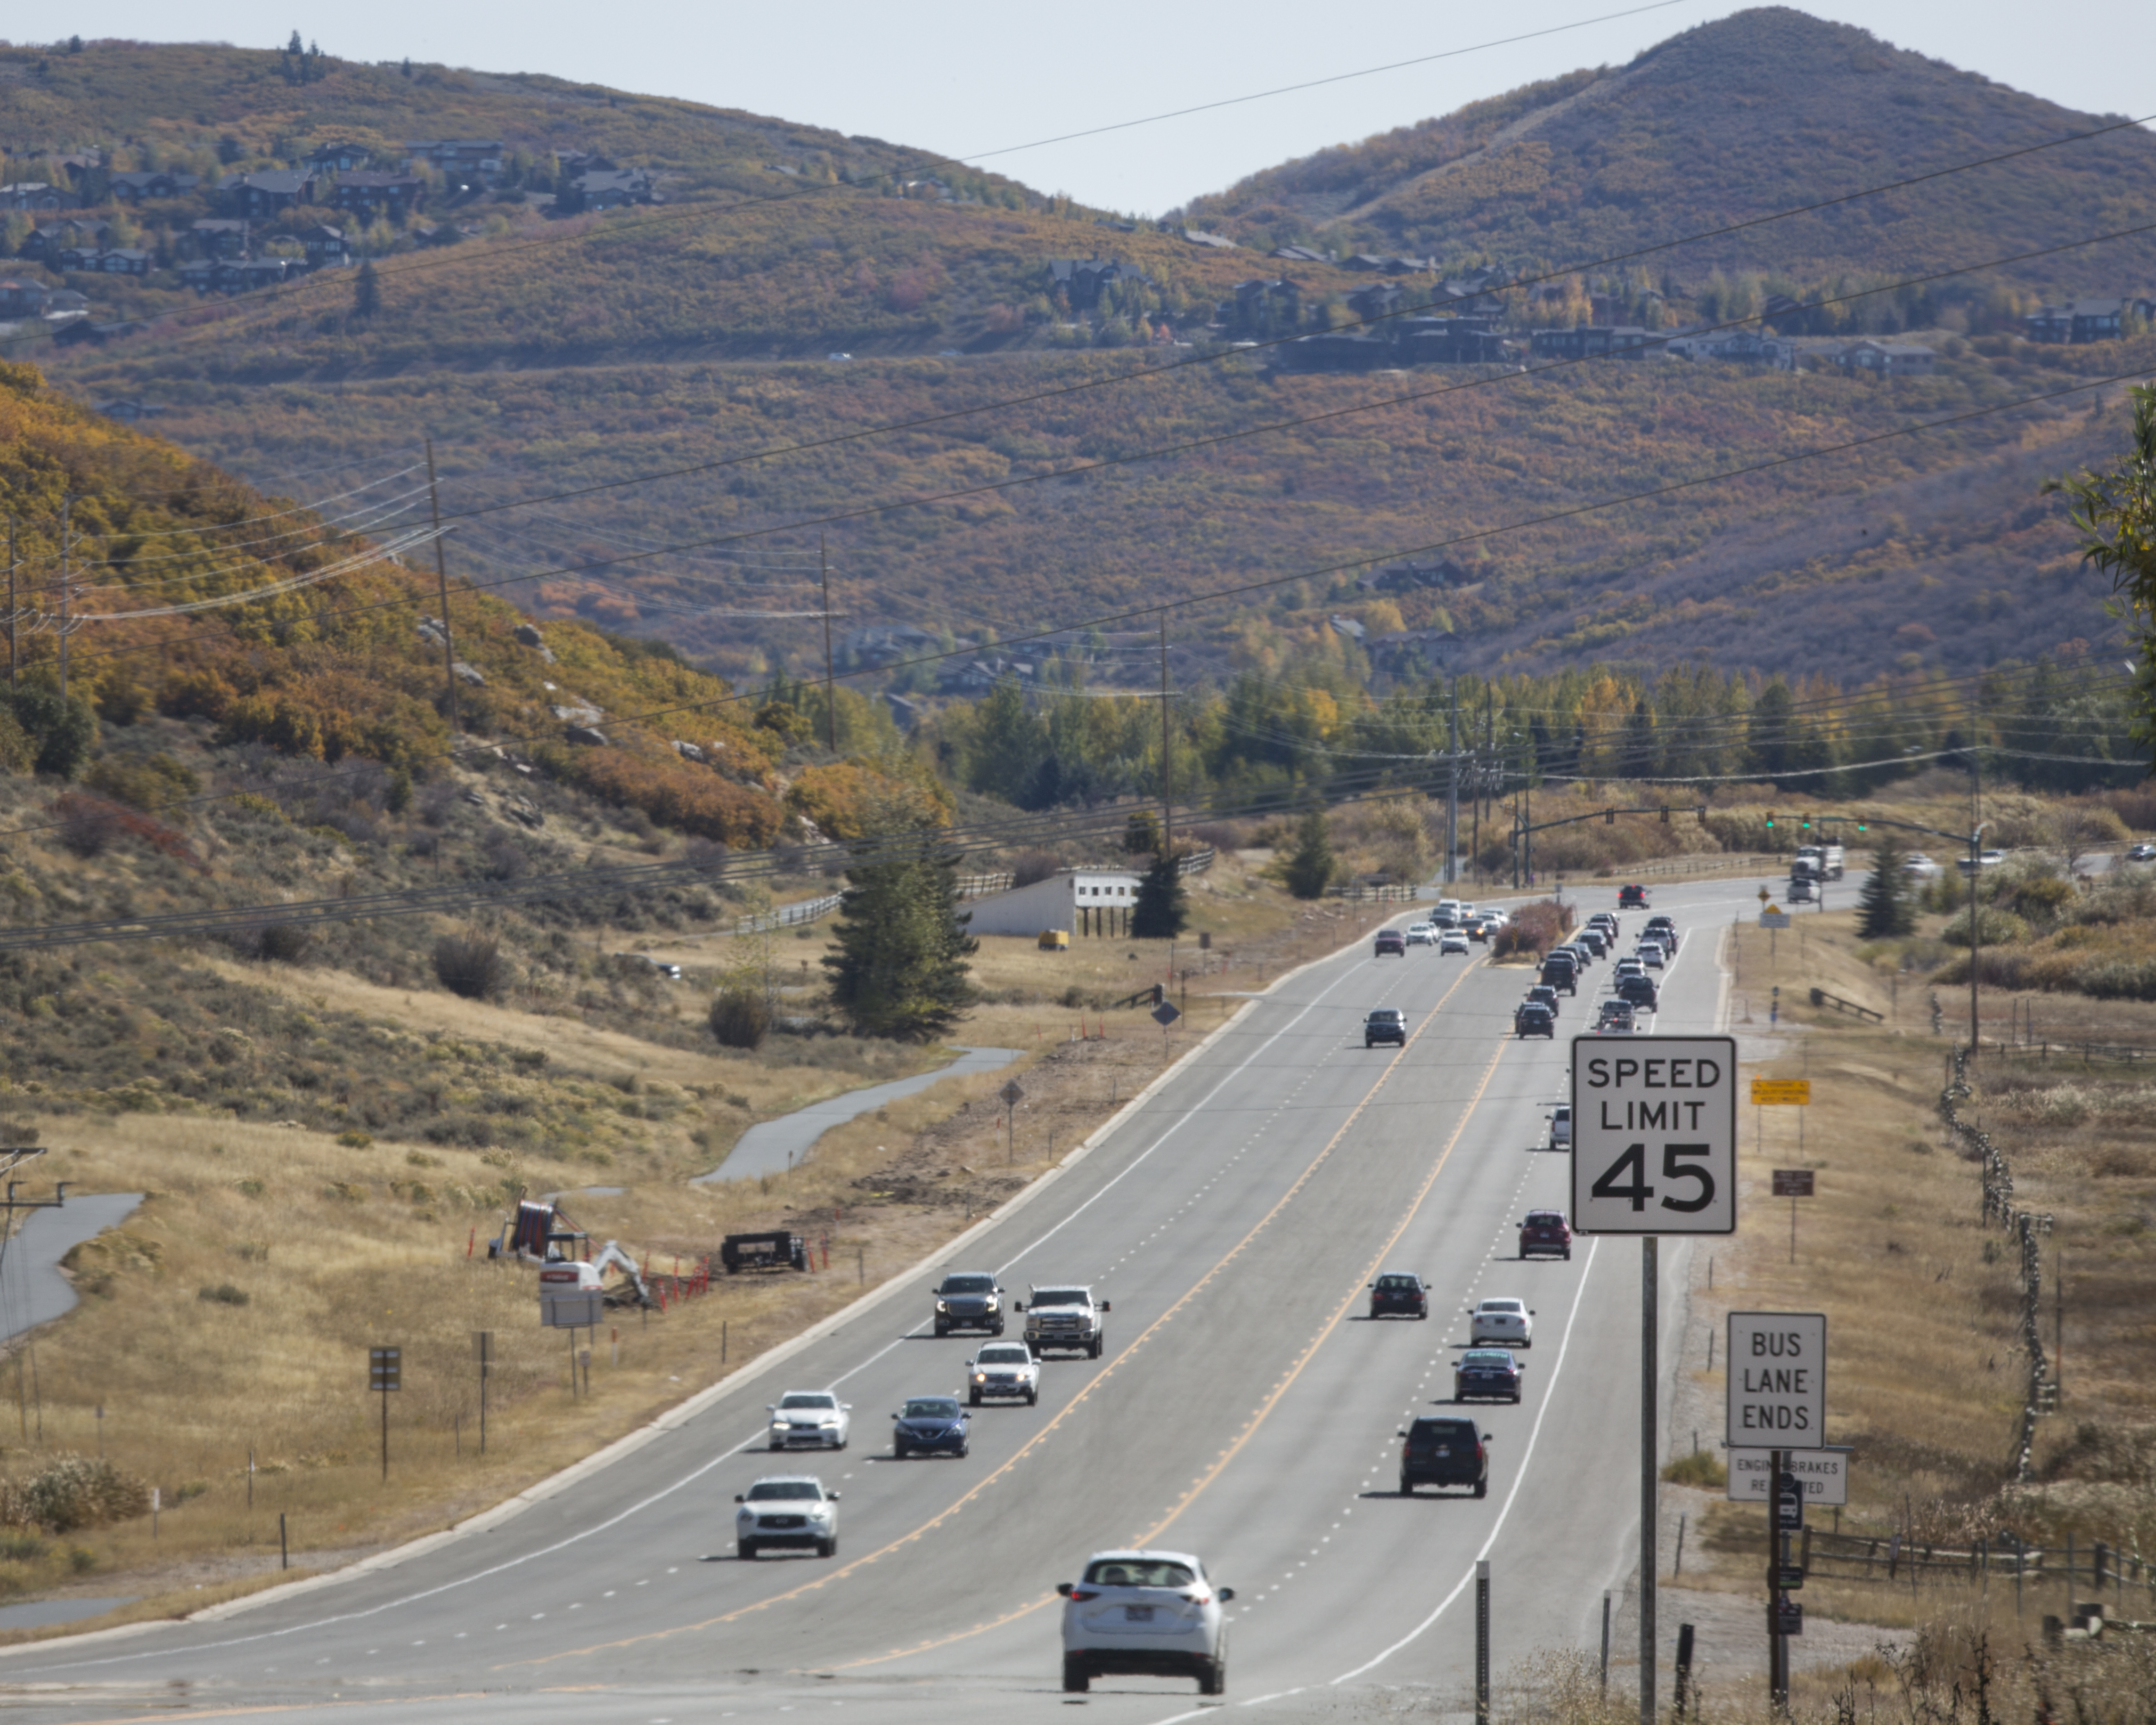 Park City police officers 'stepped up' enforcement after S.R. 224 speed change